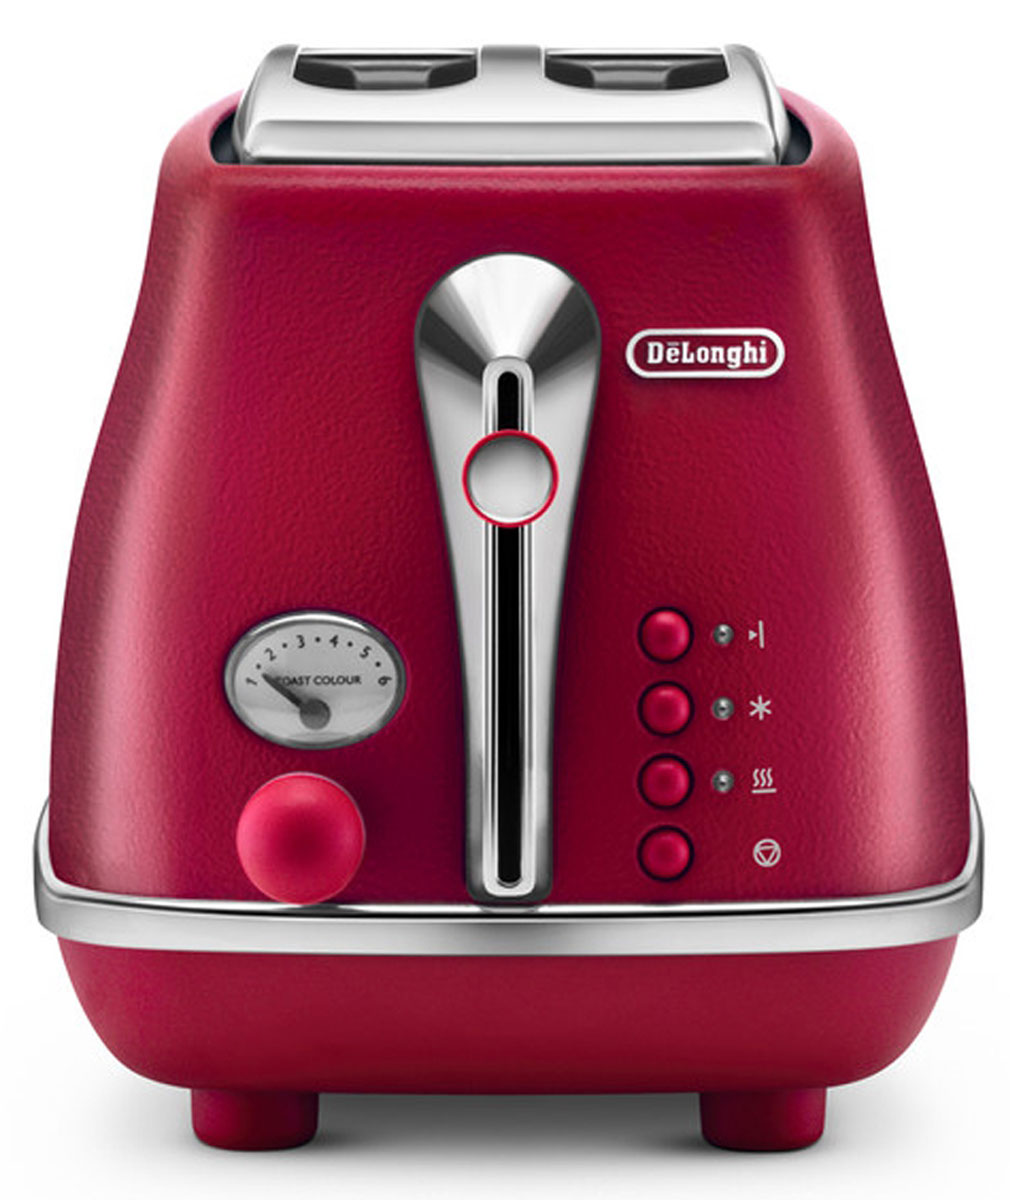 DeLonghi Icona Elements CTOE2103.R, Red тостер - Тостеры